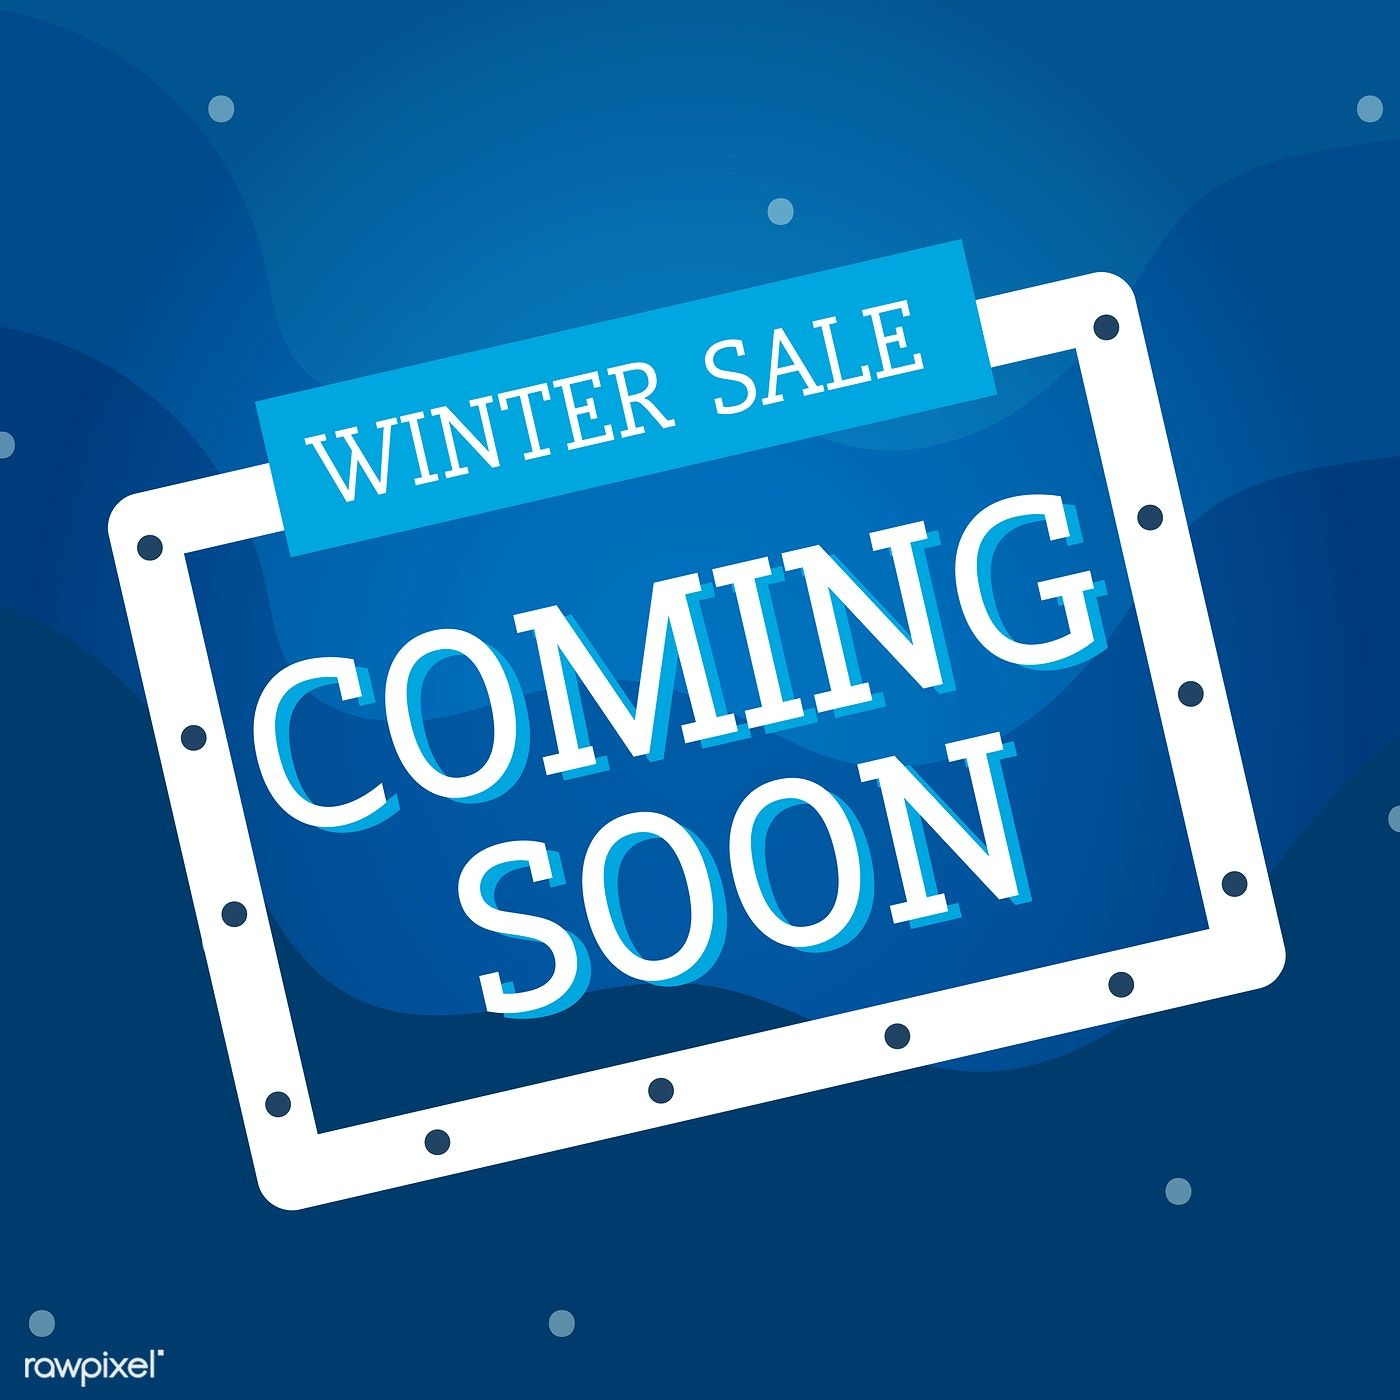 Winter sale coming soon vector free image by